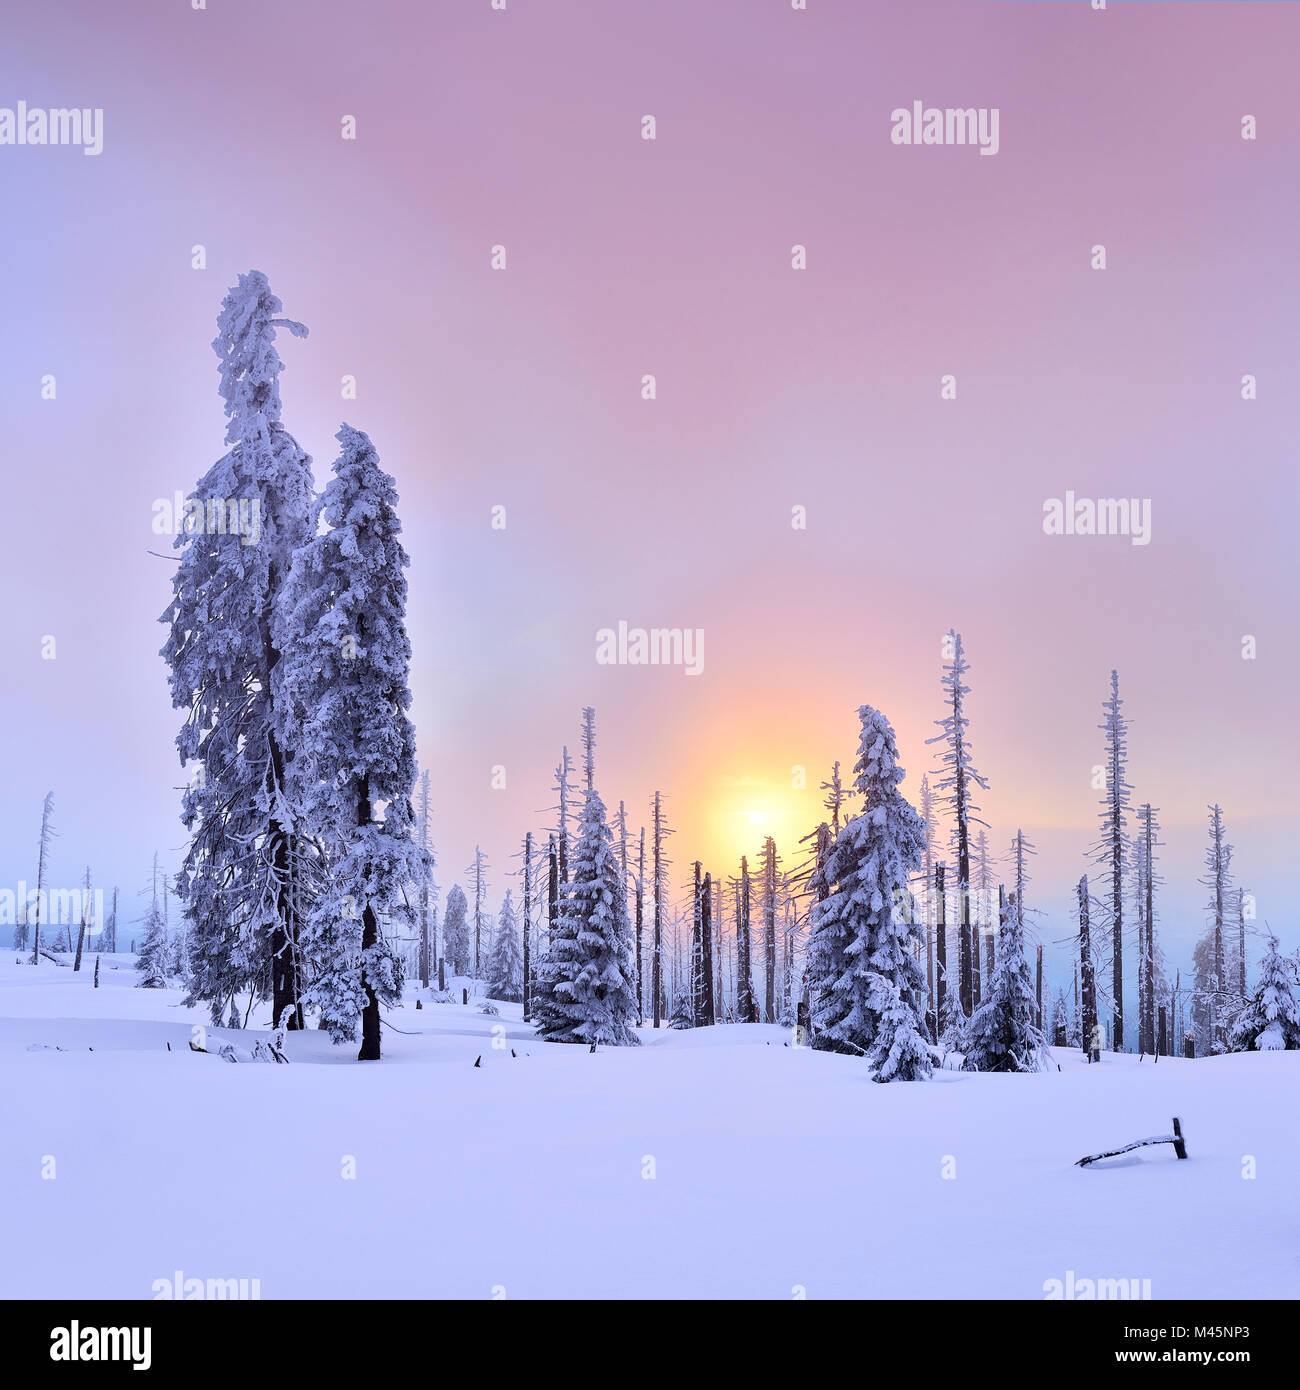 Sunset on the mountain Großer Rachel in winter,spruces covered with snow and spruces dead by bark beetle infestation - Stock Image